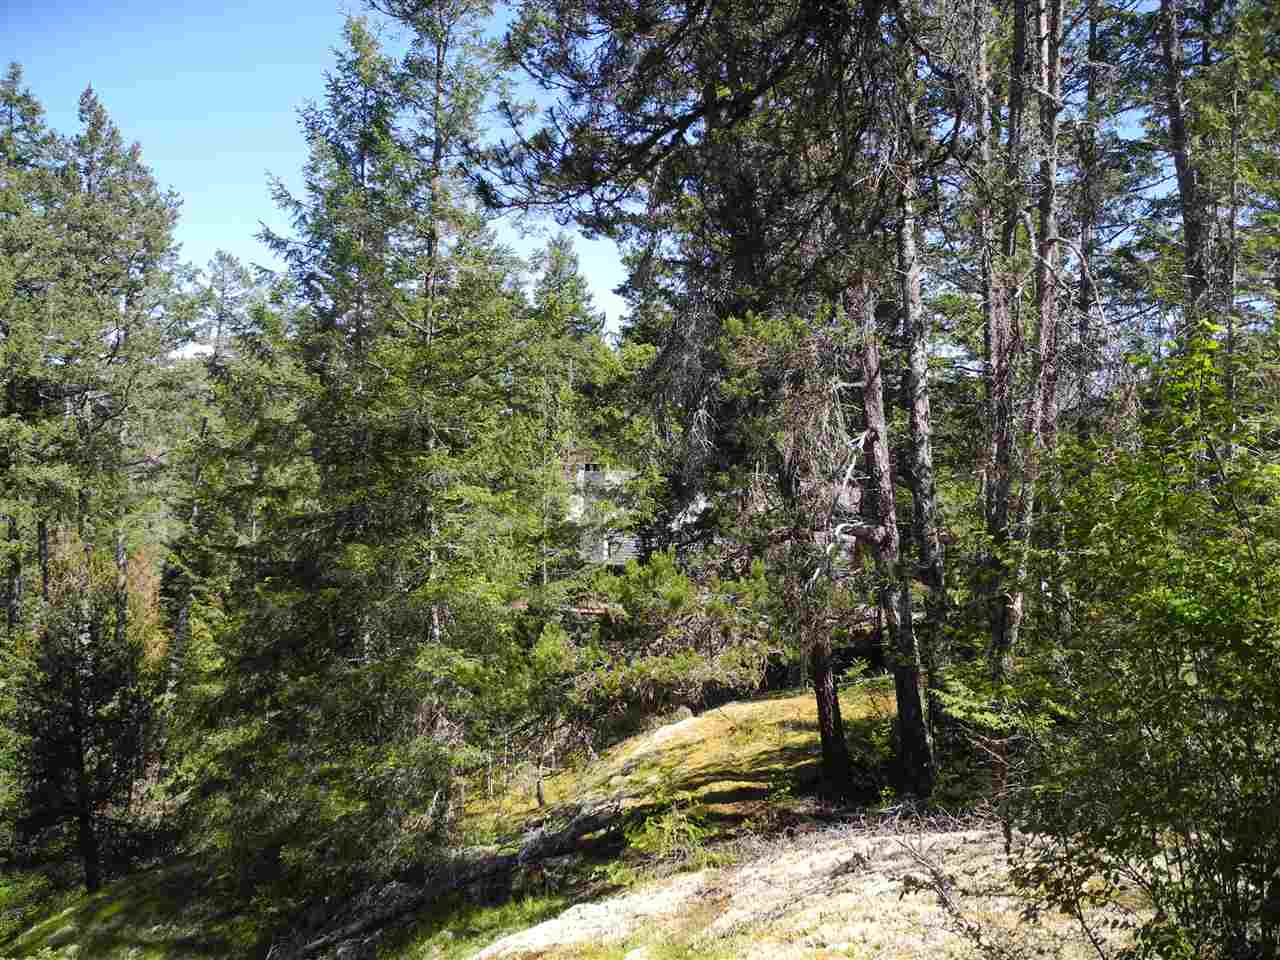 Photo 8: 4436 MCLINTOCK Road in Pender Harbour: Pender Harbour Egmont House for sale (Sunshine Coast)  : MLS(r) # R2068891